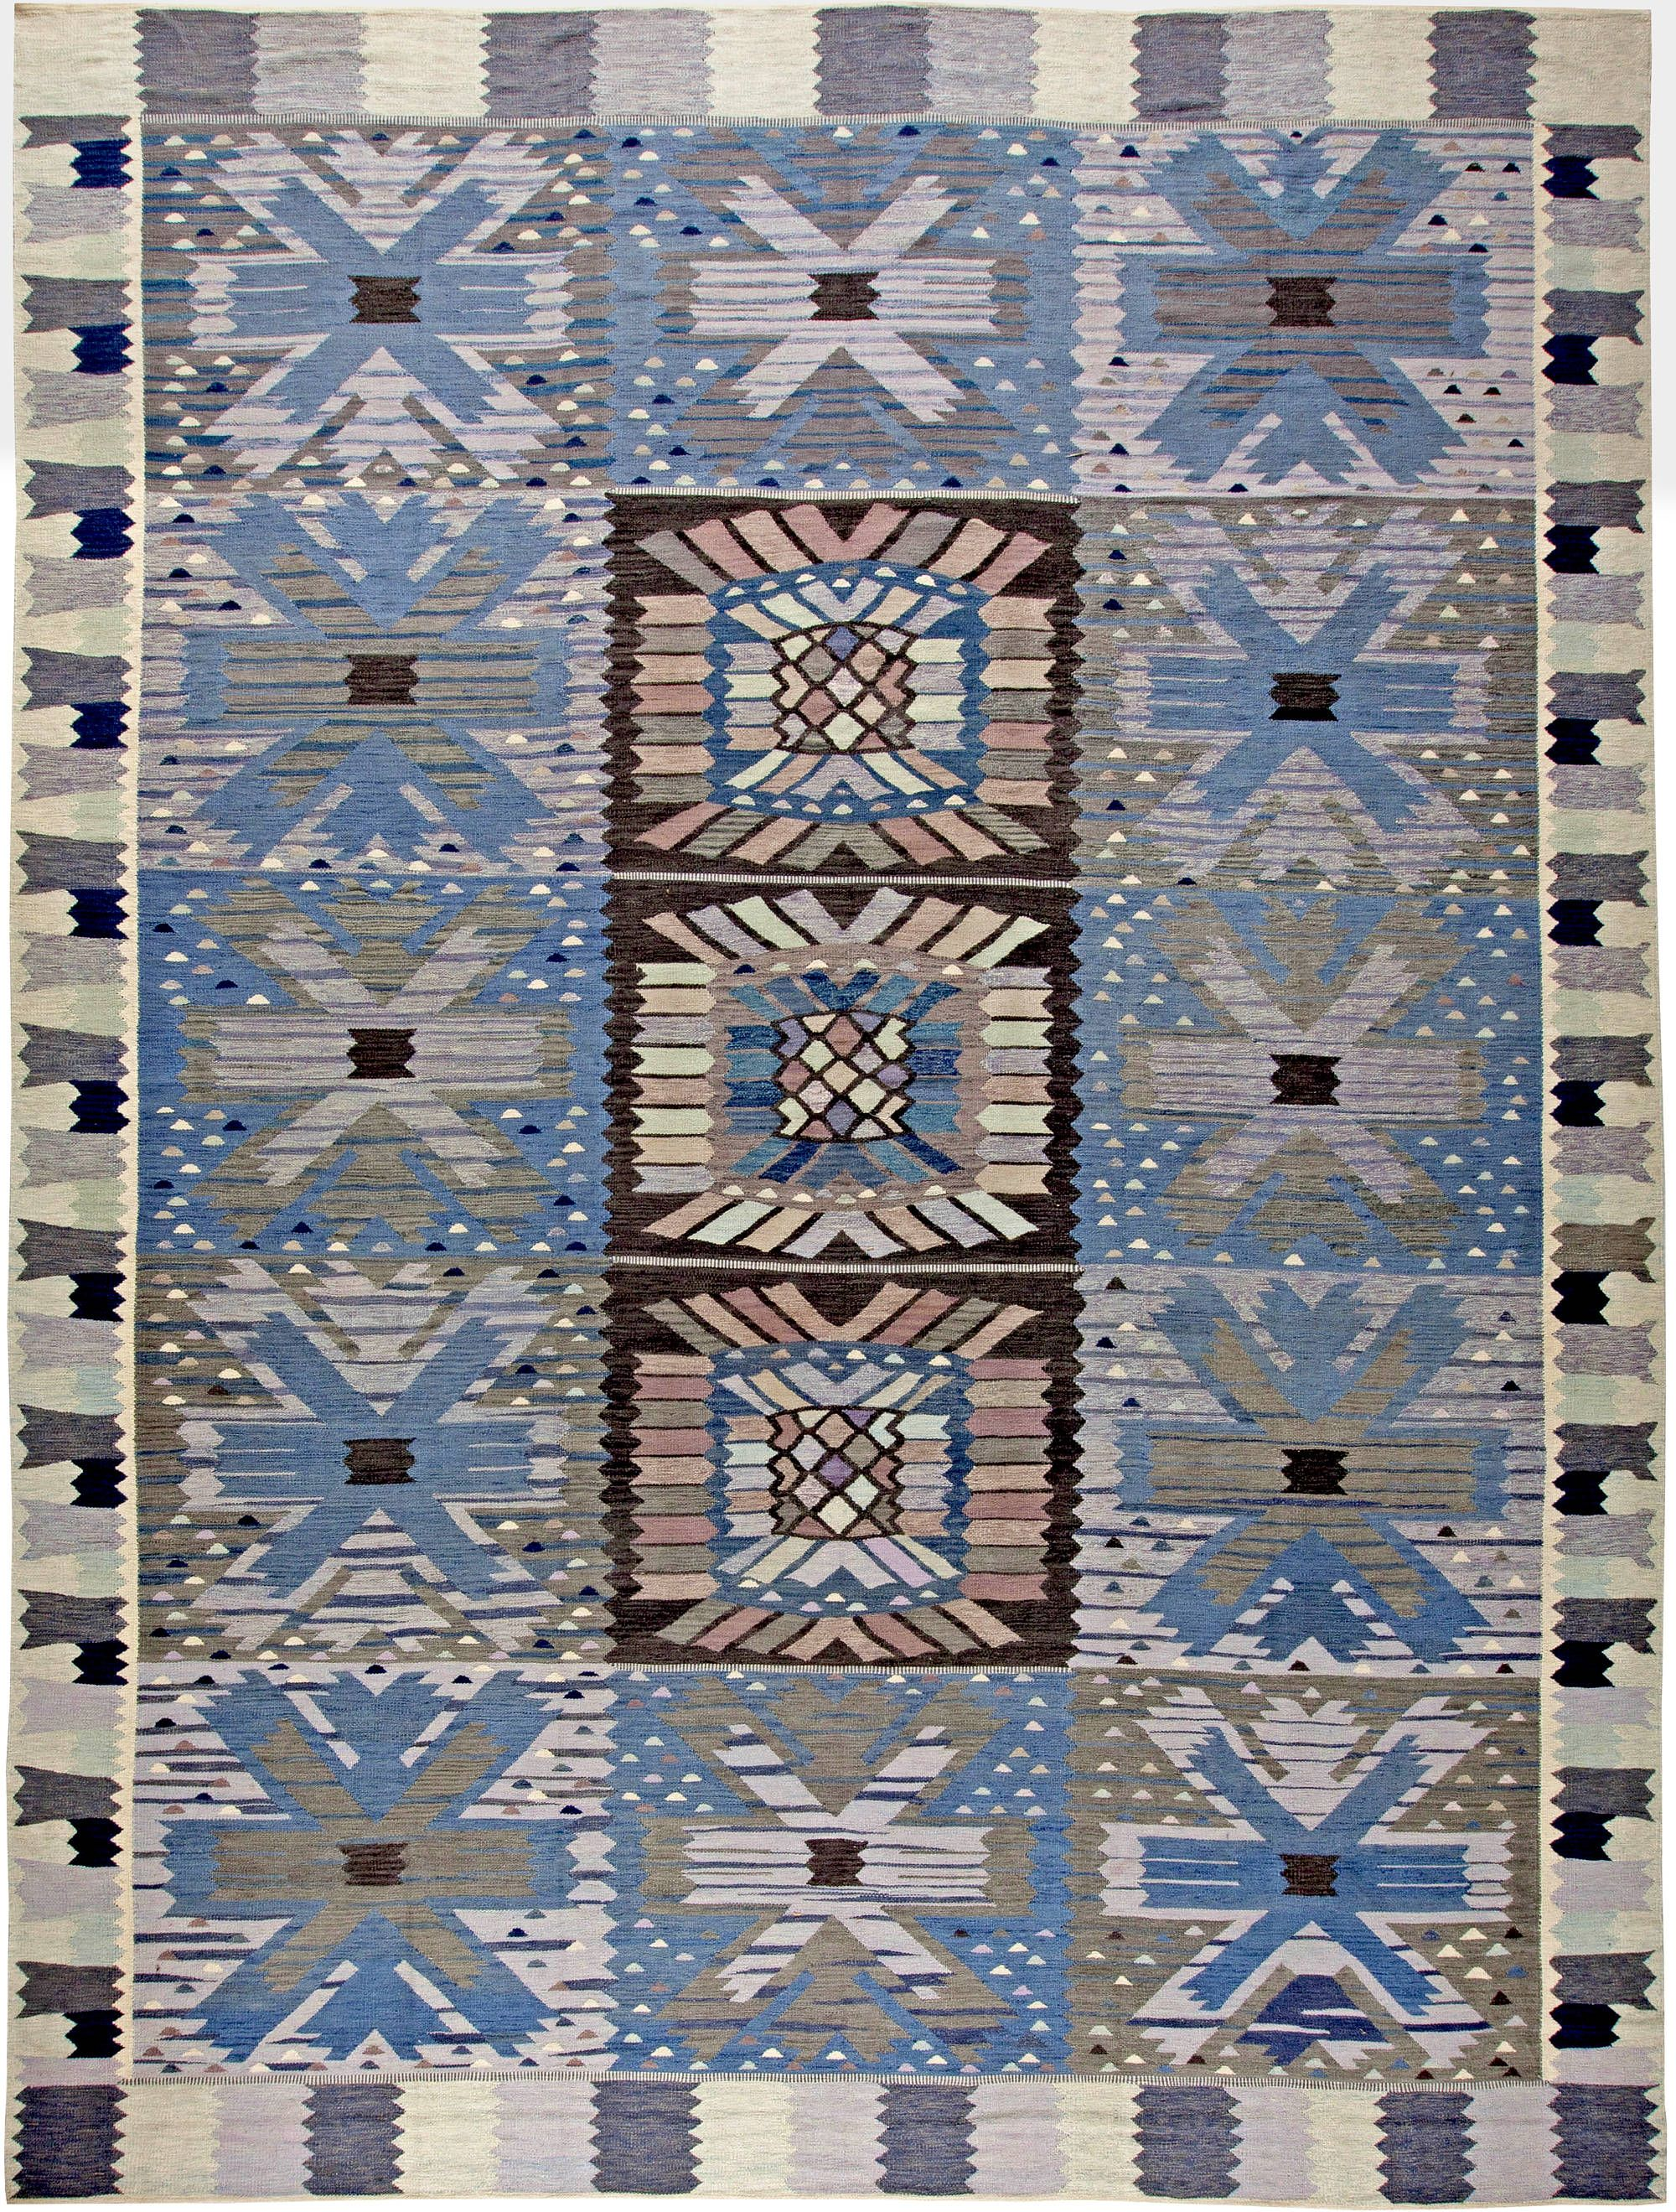 A Swedish Design Rug Size 16 5 X 12 4 Contemporary Hand Knotted Wool Price 24 000